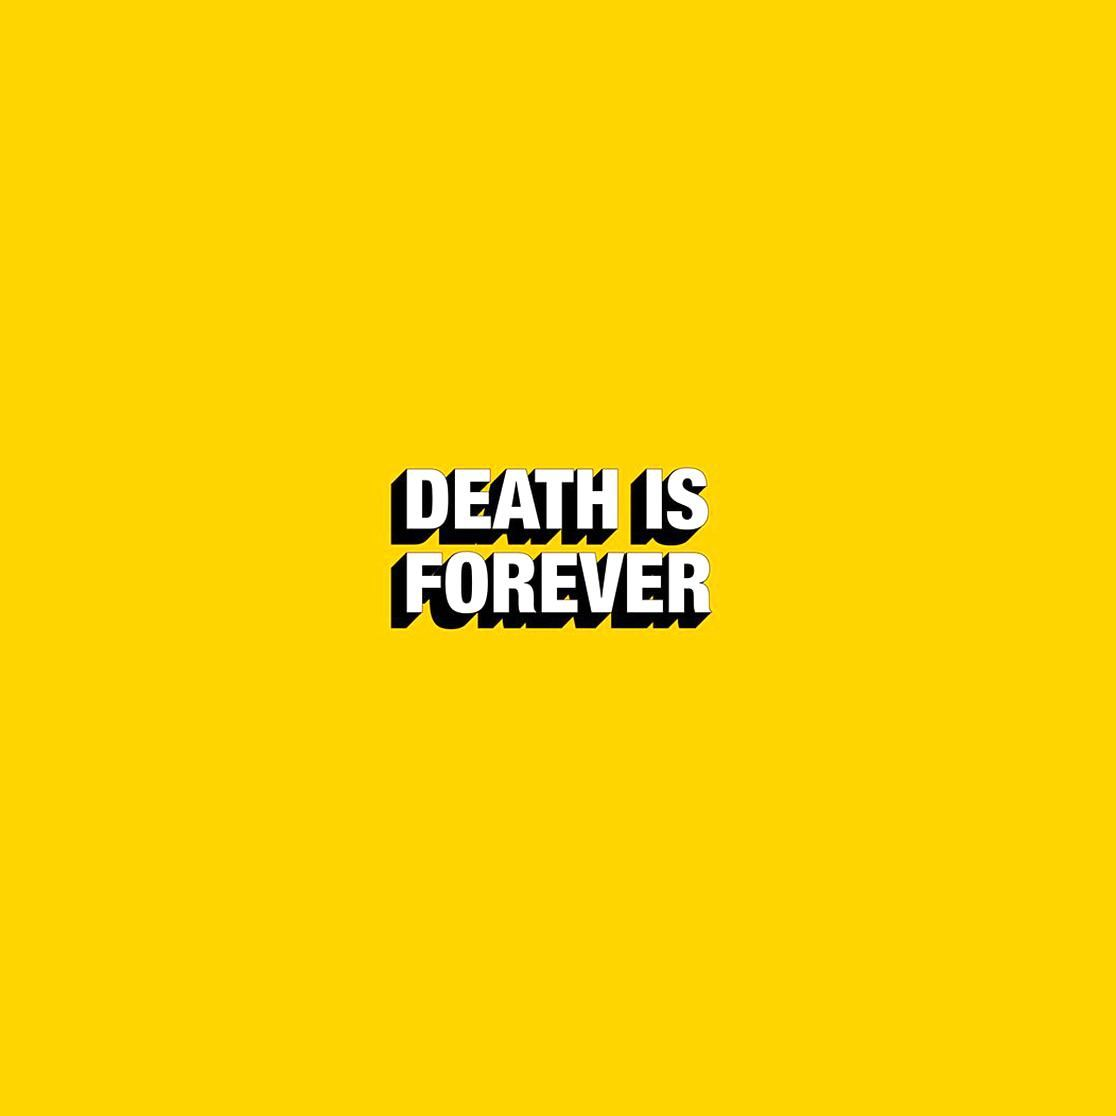 And Life Is Temporary Thats Why You Should Enjoy It So Much In 2020 Life Death Enjoyment